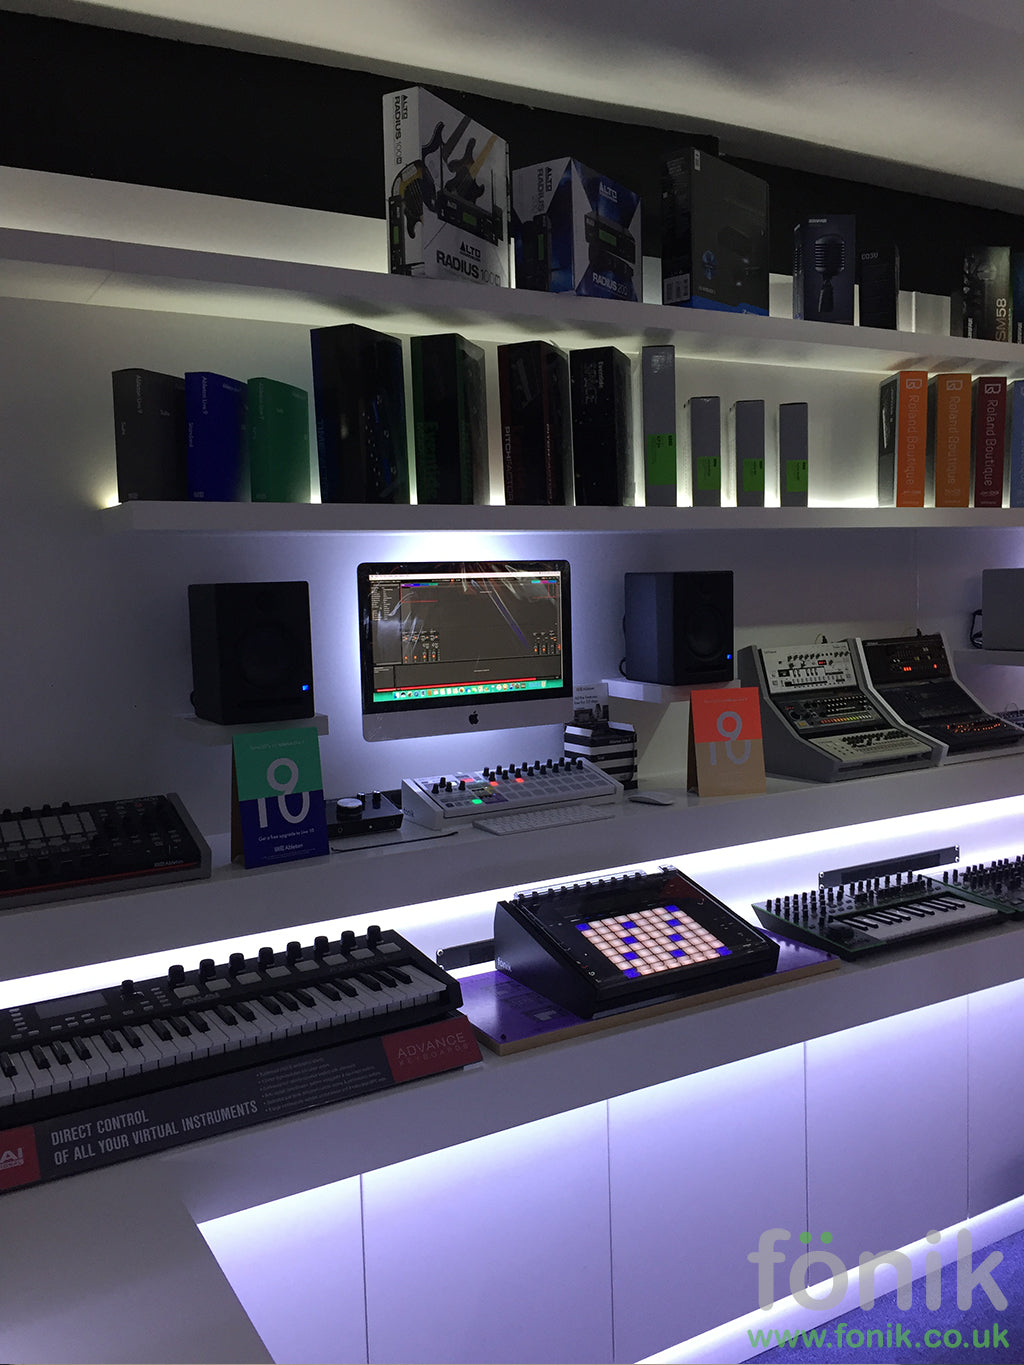 Fonik Bespoke Shop Fit and Arturia Beatstep stand in white